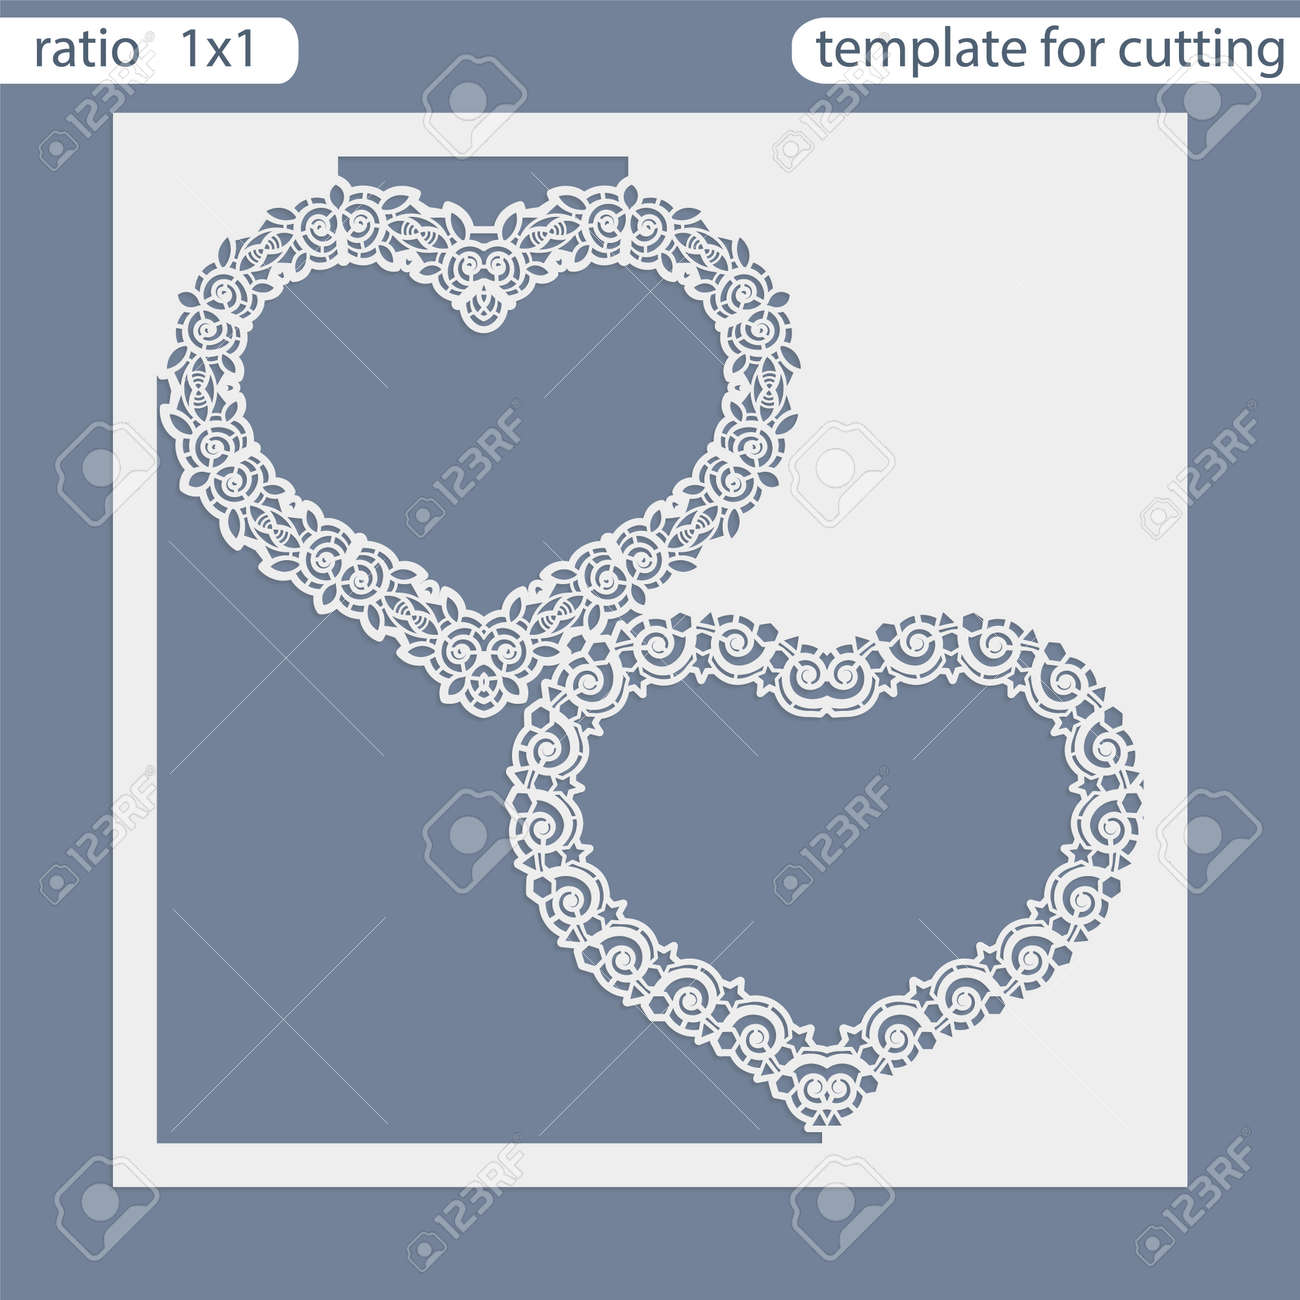 Laser Cut Wedding Invitation Card Template Out The Paper With Lace Pattern Greeting For Cutting Plotter: Cut Out Wedding Invitation Card Templates At Websimilar.org